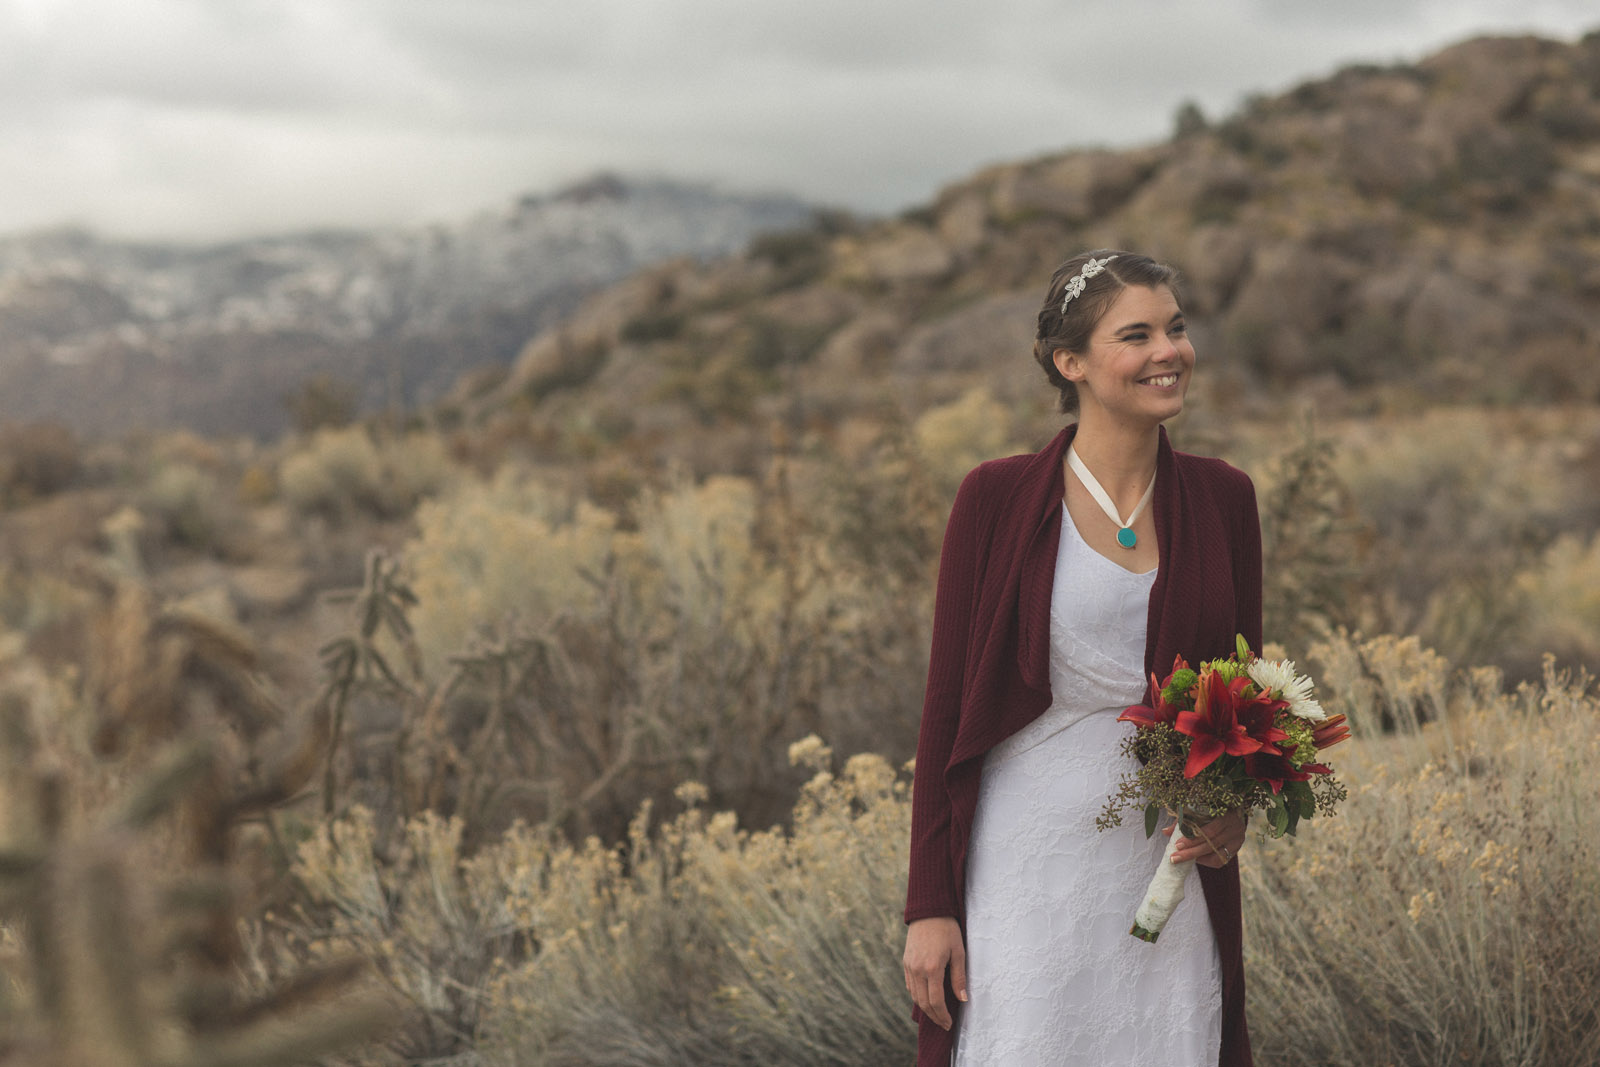 148-bride-captured-in-mountains-by-photographers-in-new-mexico-near-deserts